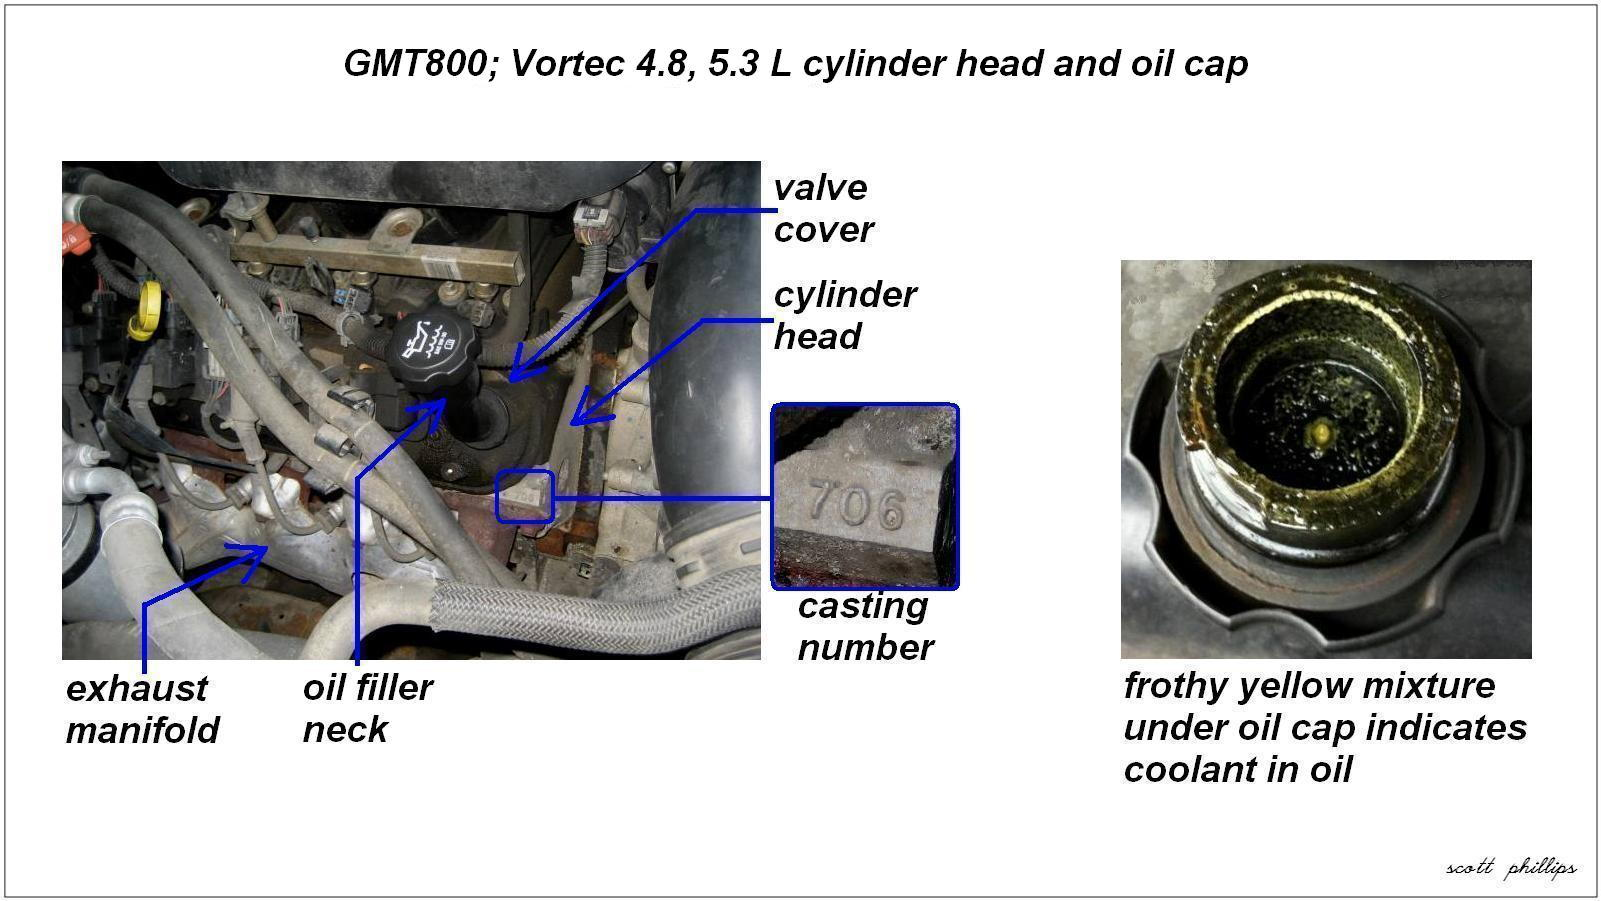 69 FUEL Fixing  mon Vacuum Leaks also 99 Ford Windstar 3 8 Engine Diagram together with Fuel Injector Replacement Cost additionally Fuel Injector Replacement Cost as well Diaphragm Valve For Crankcase Ventilation Opel Engine Z16xep Z16xe1 A16xer A18xer Z16let Z16xer Z18xer. on pcv valve replacement cost